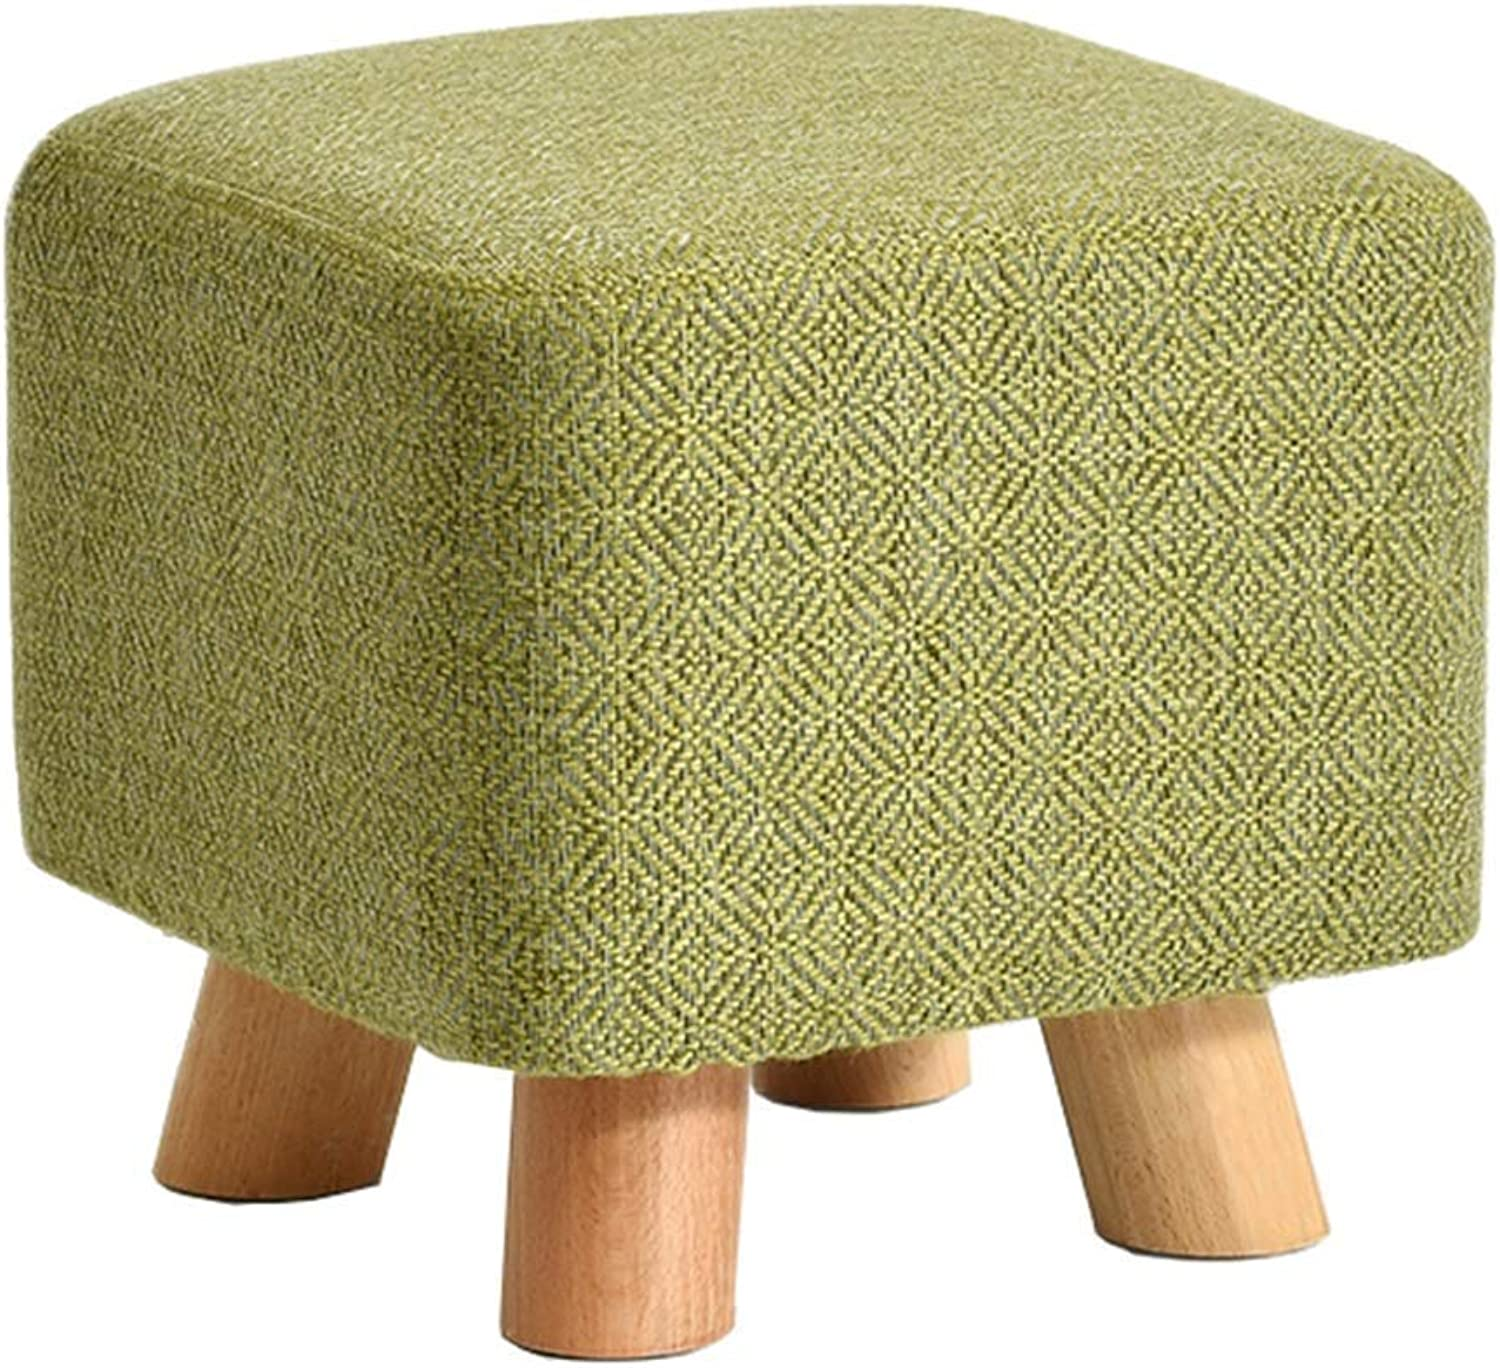 Green Footstool Home Solid Wood Square Padded Footstools to Increase Stools to Change shoes Small Bench 4 Legs Non-Slip Feet (29 × 29 × 25CM)